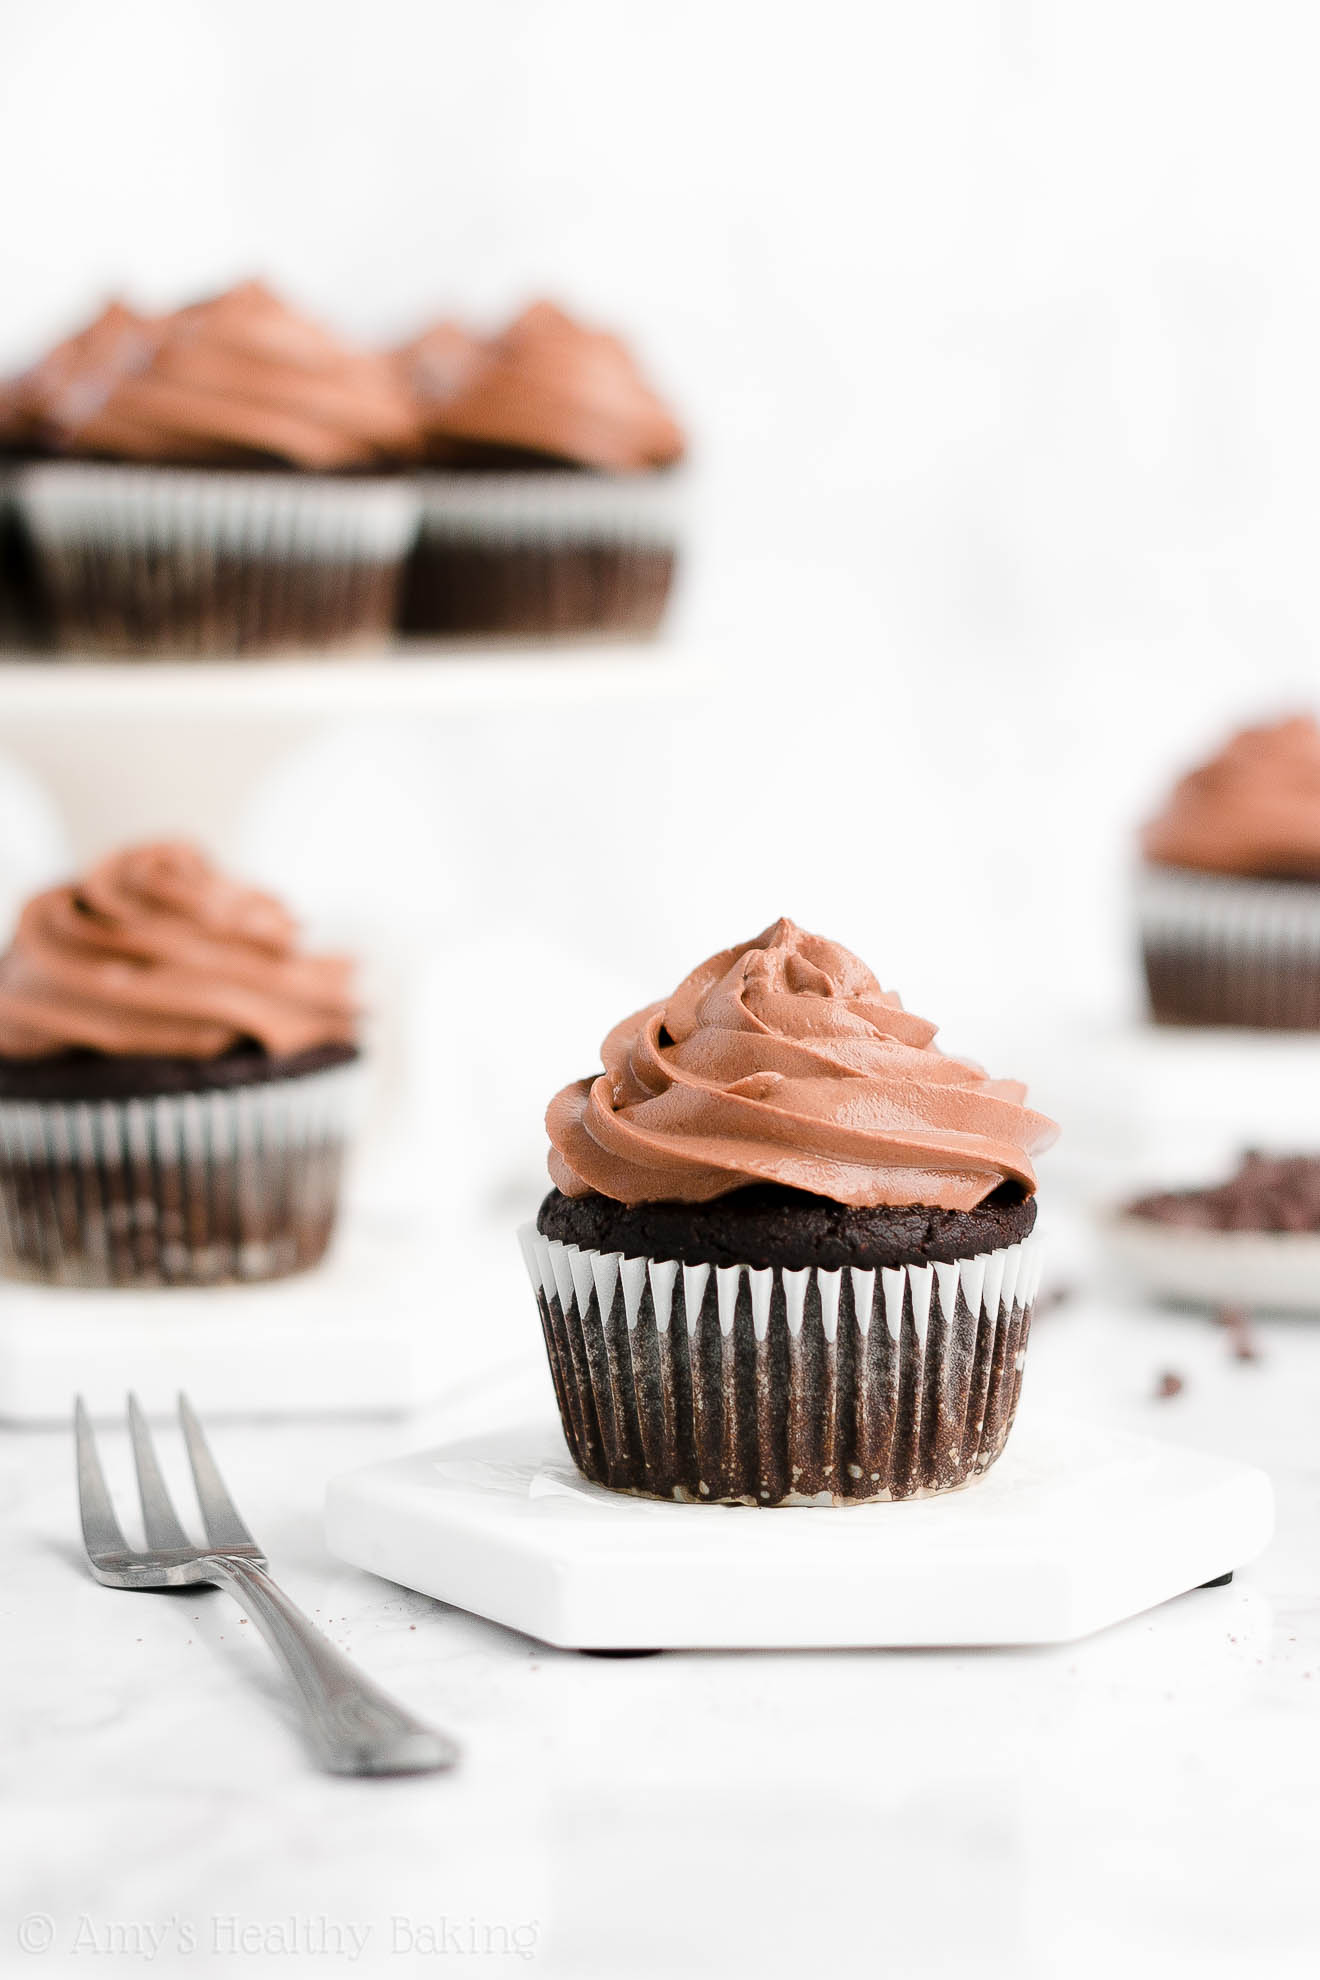 Best Easy Healthy Homemade Gluten-Free Moist One-Bowl Chocolate Cupcakes